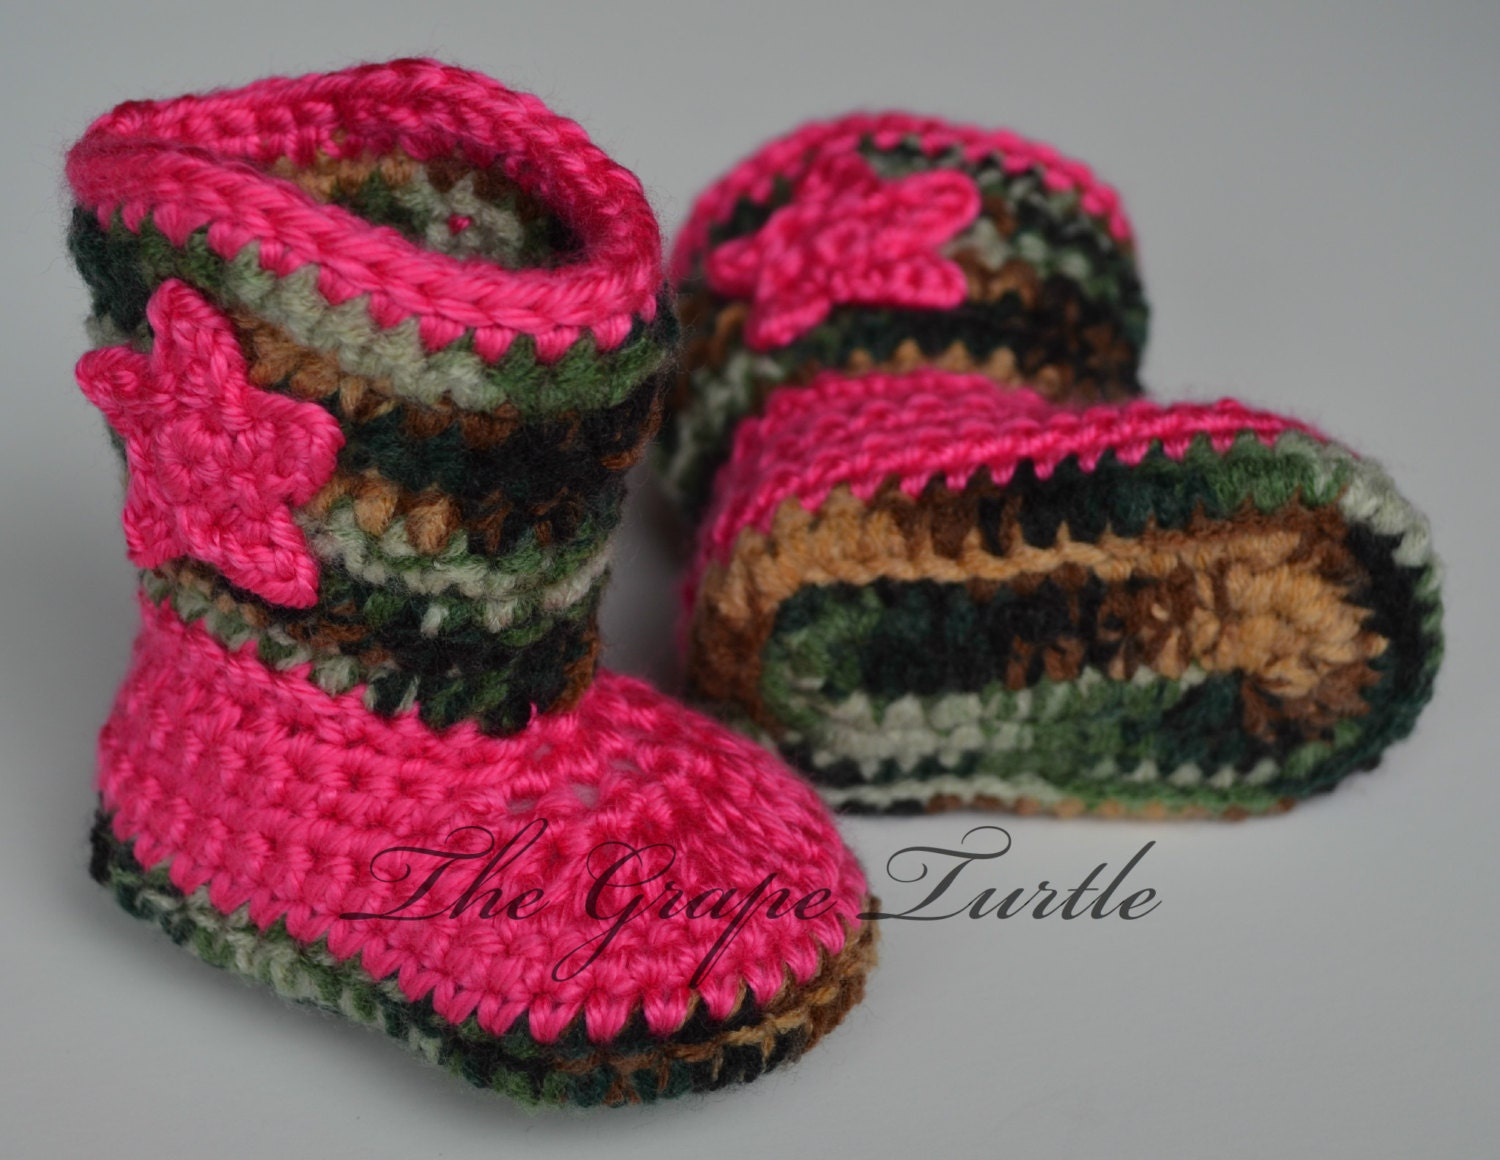 Free Crochet Patterns For Baby Girl Bonnets : Crochet Baby Cowboy Boots www.galleryhip.com - The ...